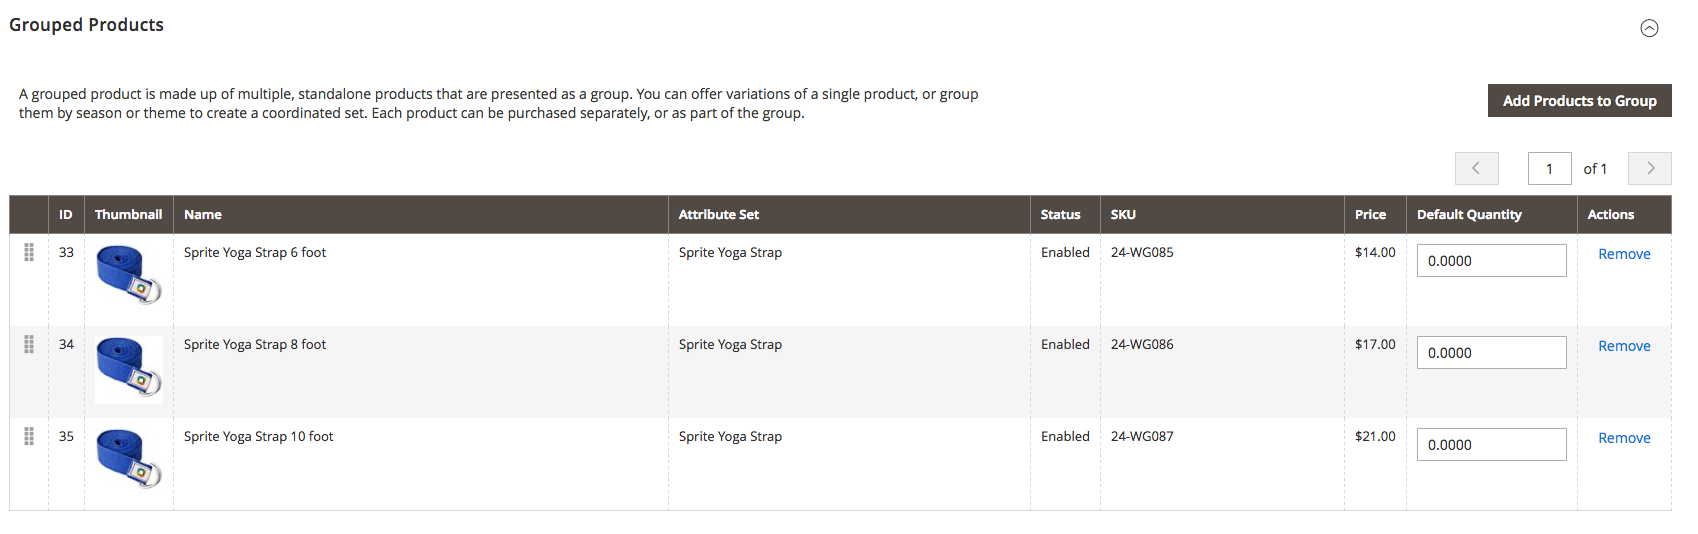 grouped product magento 2 admin panel